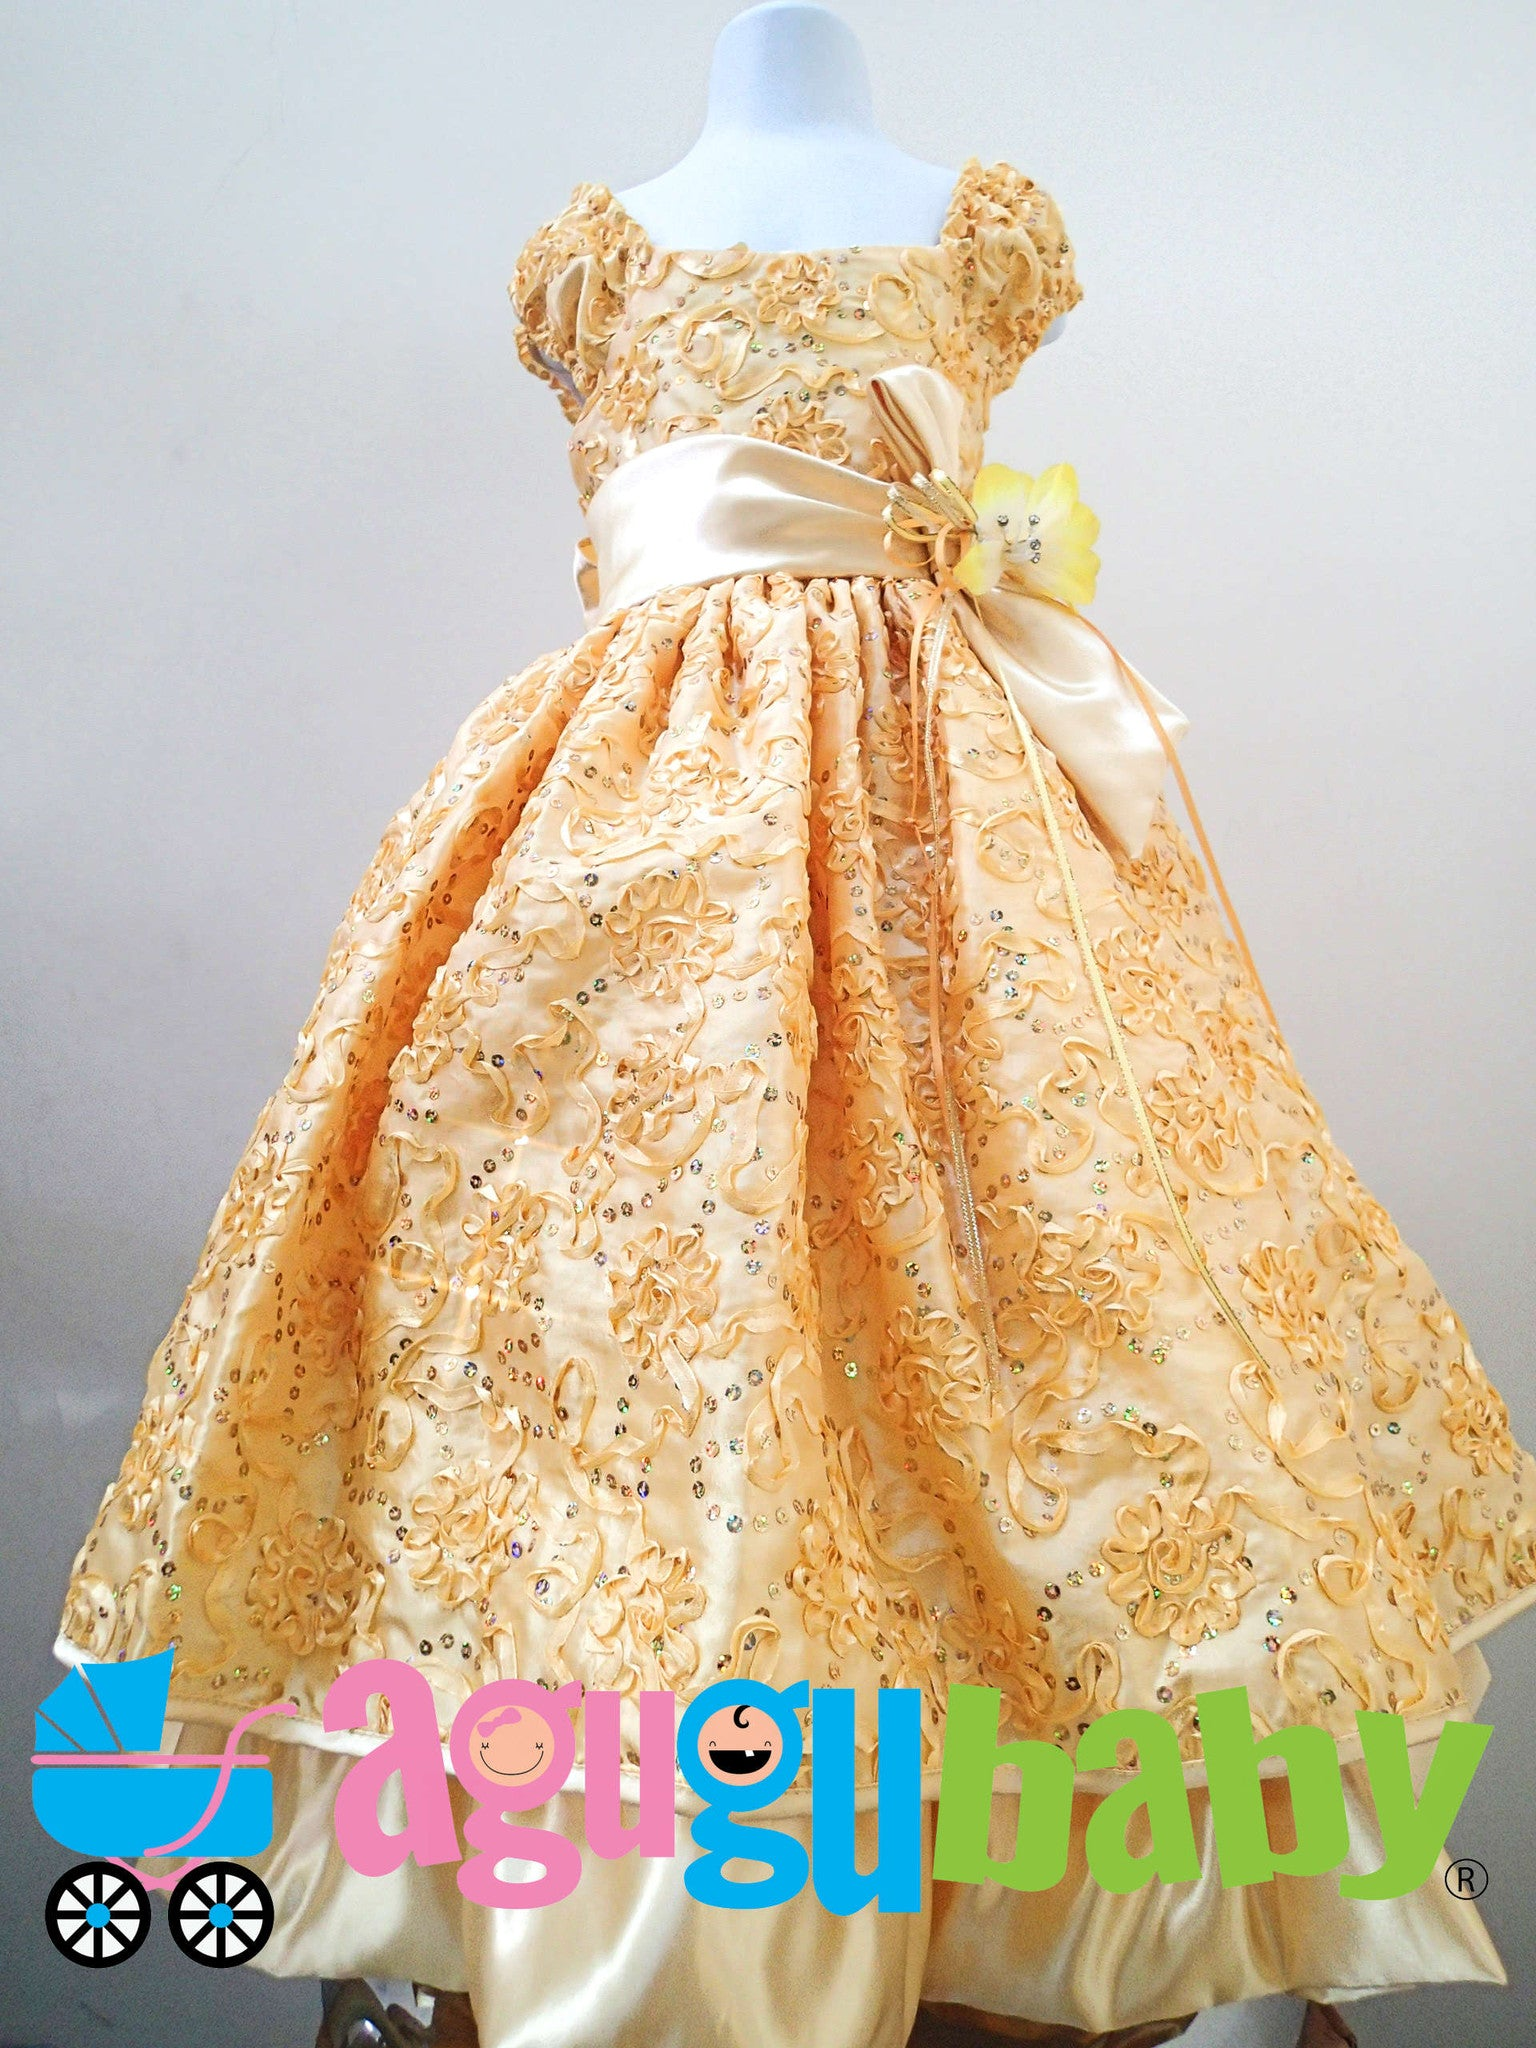 Girl Dress Yellow with Ribbon Flowers Embroided in Fabric